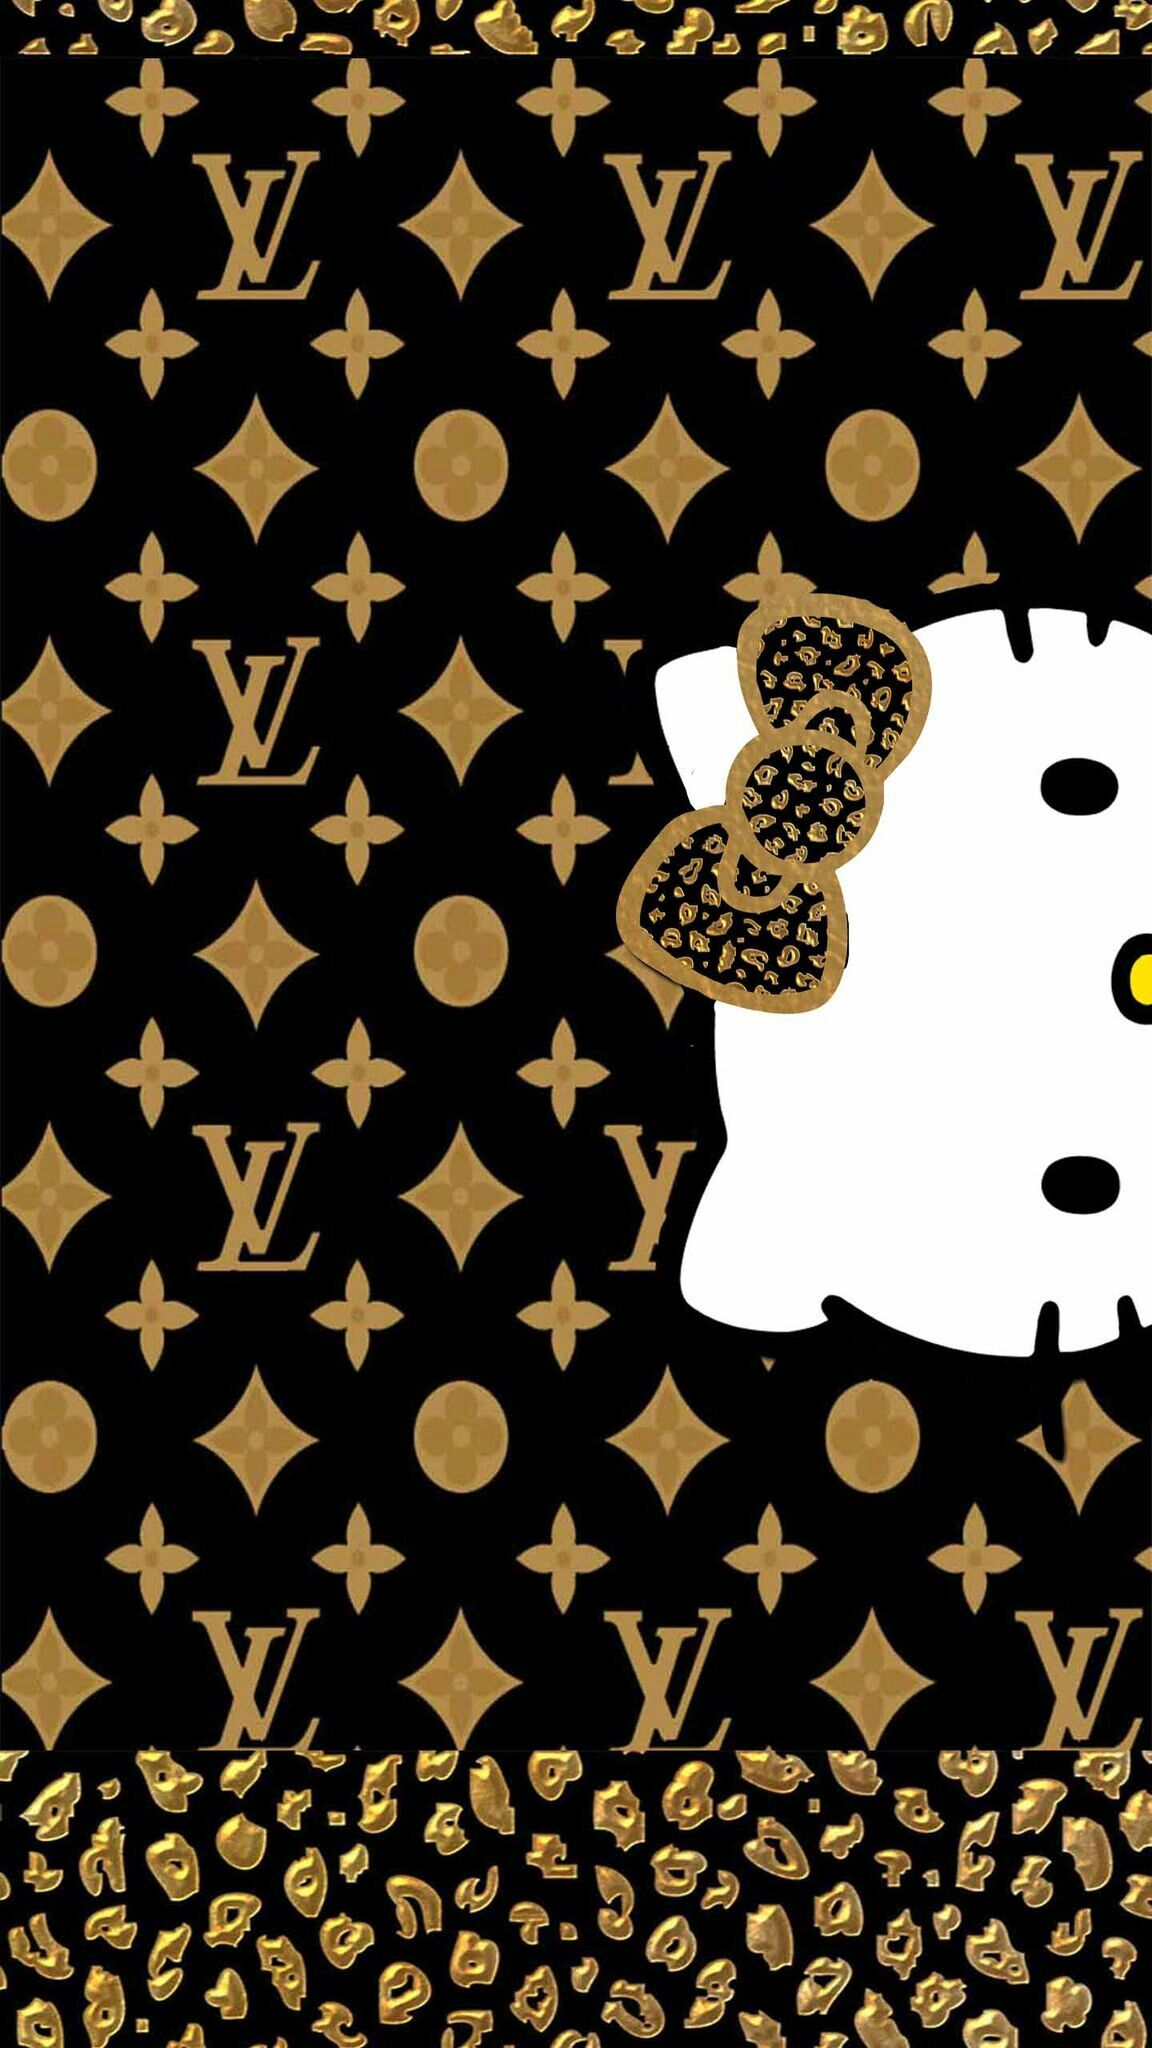 Wallpaper iphone louis vuitton - Iphone Wall Hk Tjn Kitty Wallpaperphone Wallpaperspretty Wallpapershello Kittyprintable Letterslouis Vuittonsmartphonejournalingipad